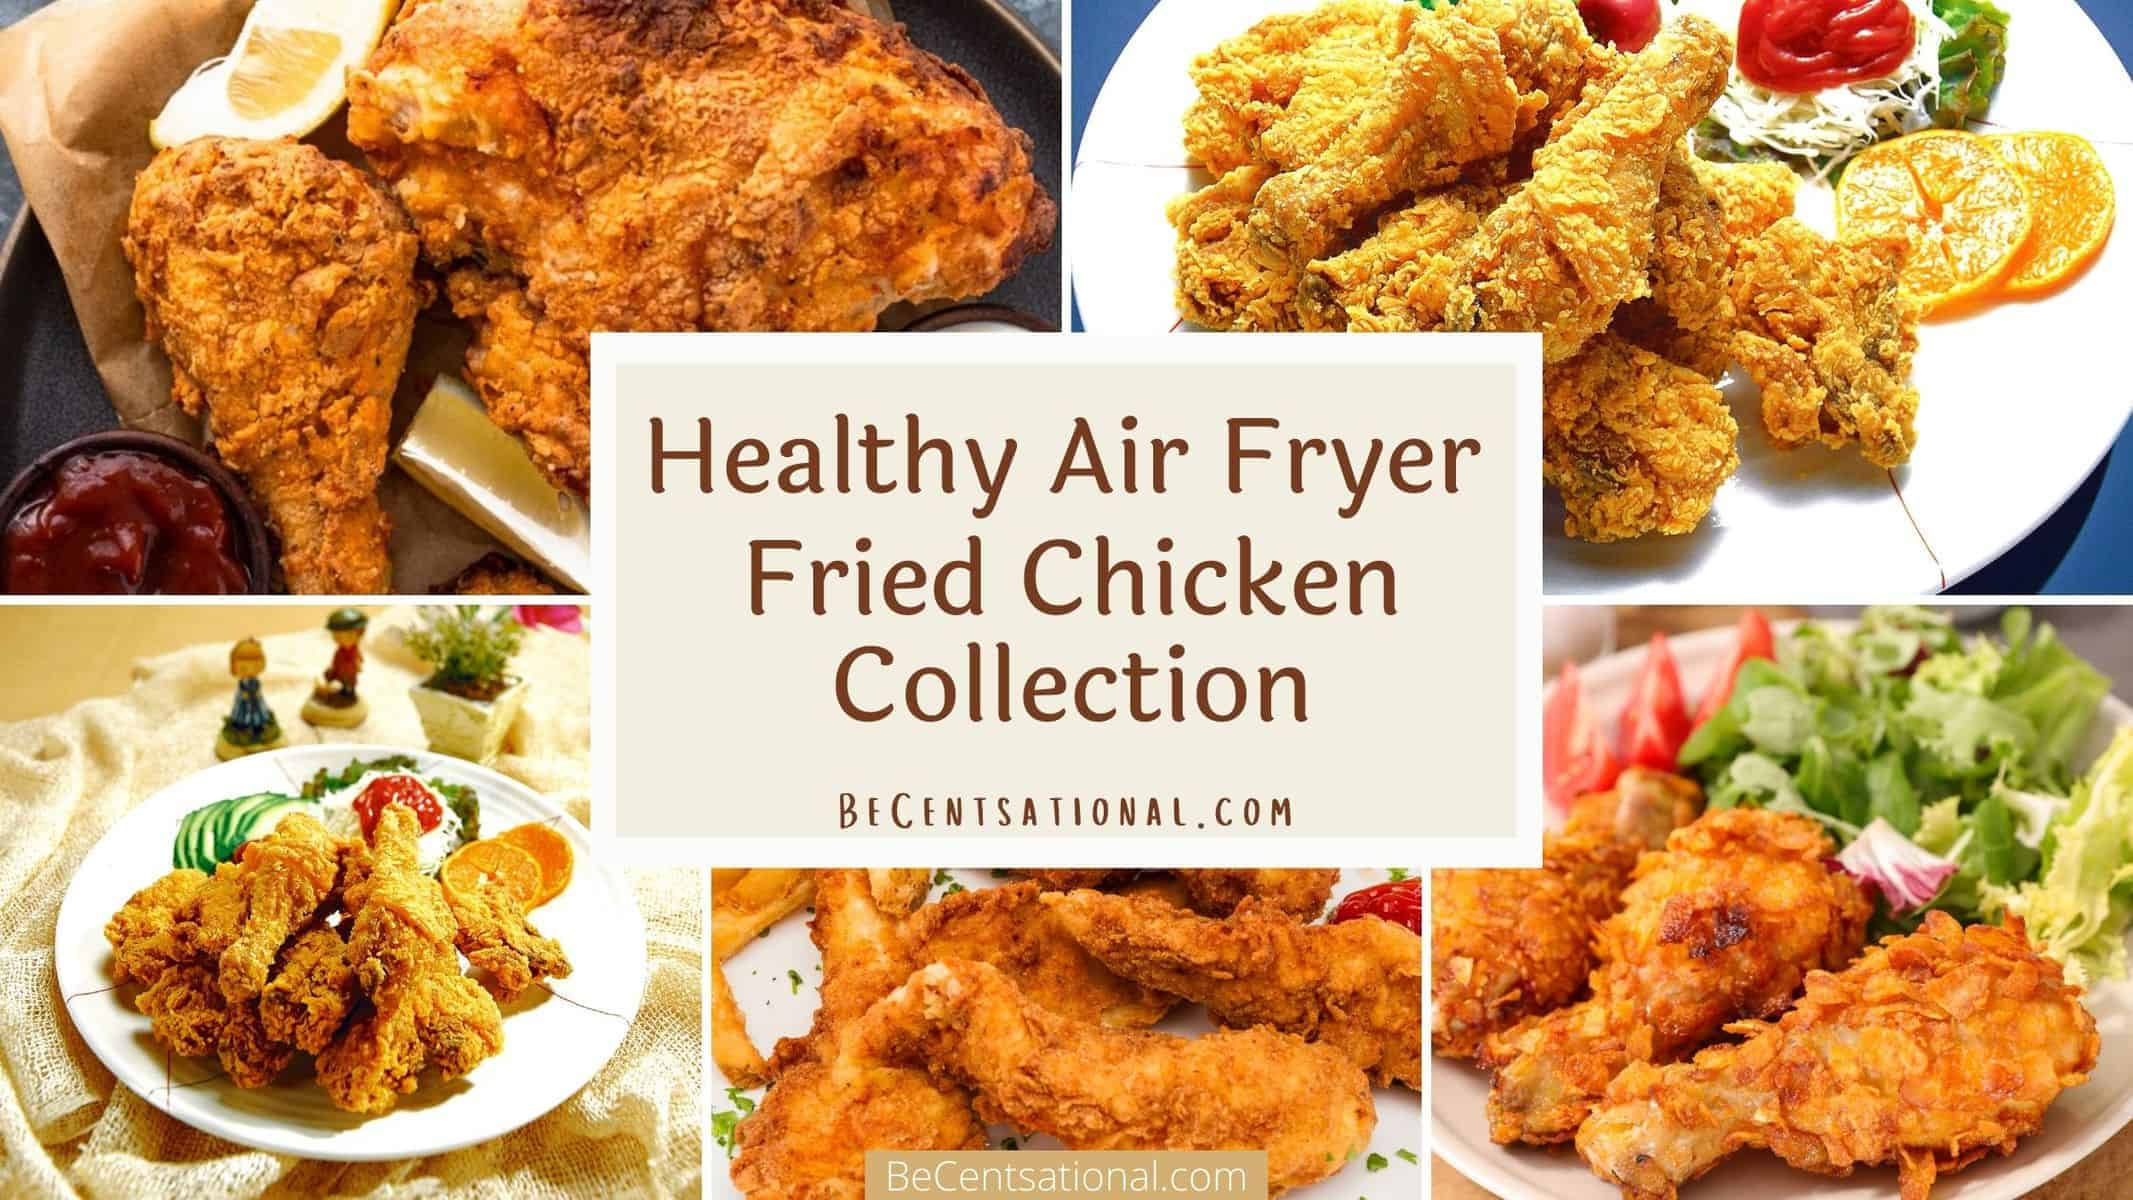 Air Fryer Fried Chicken Collection